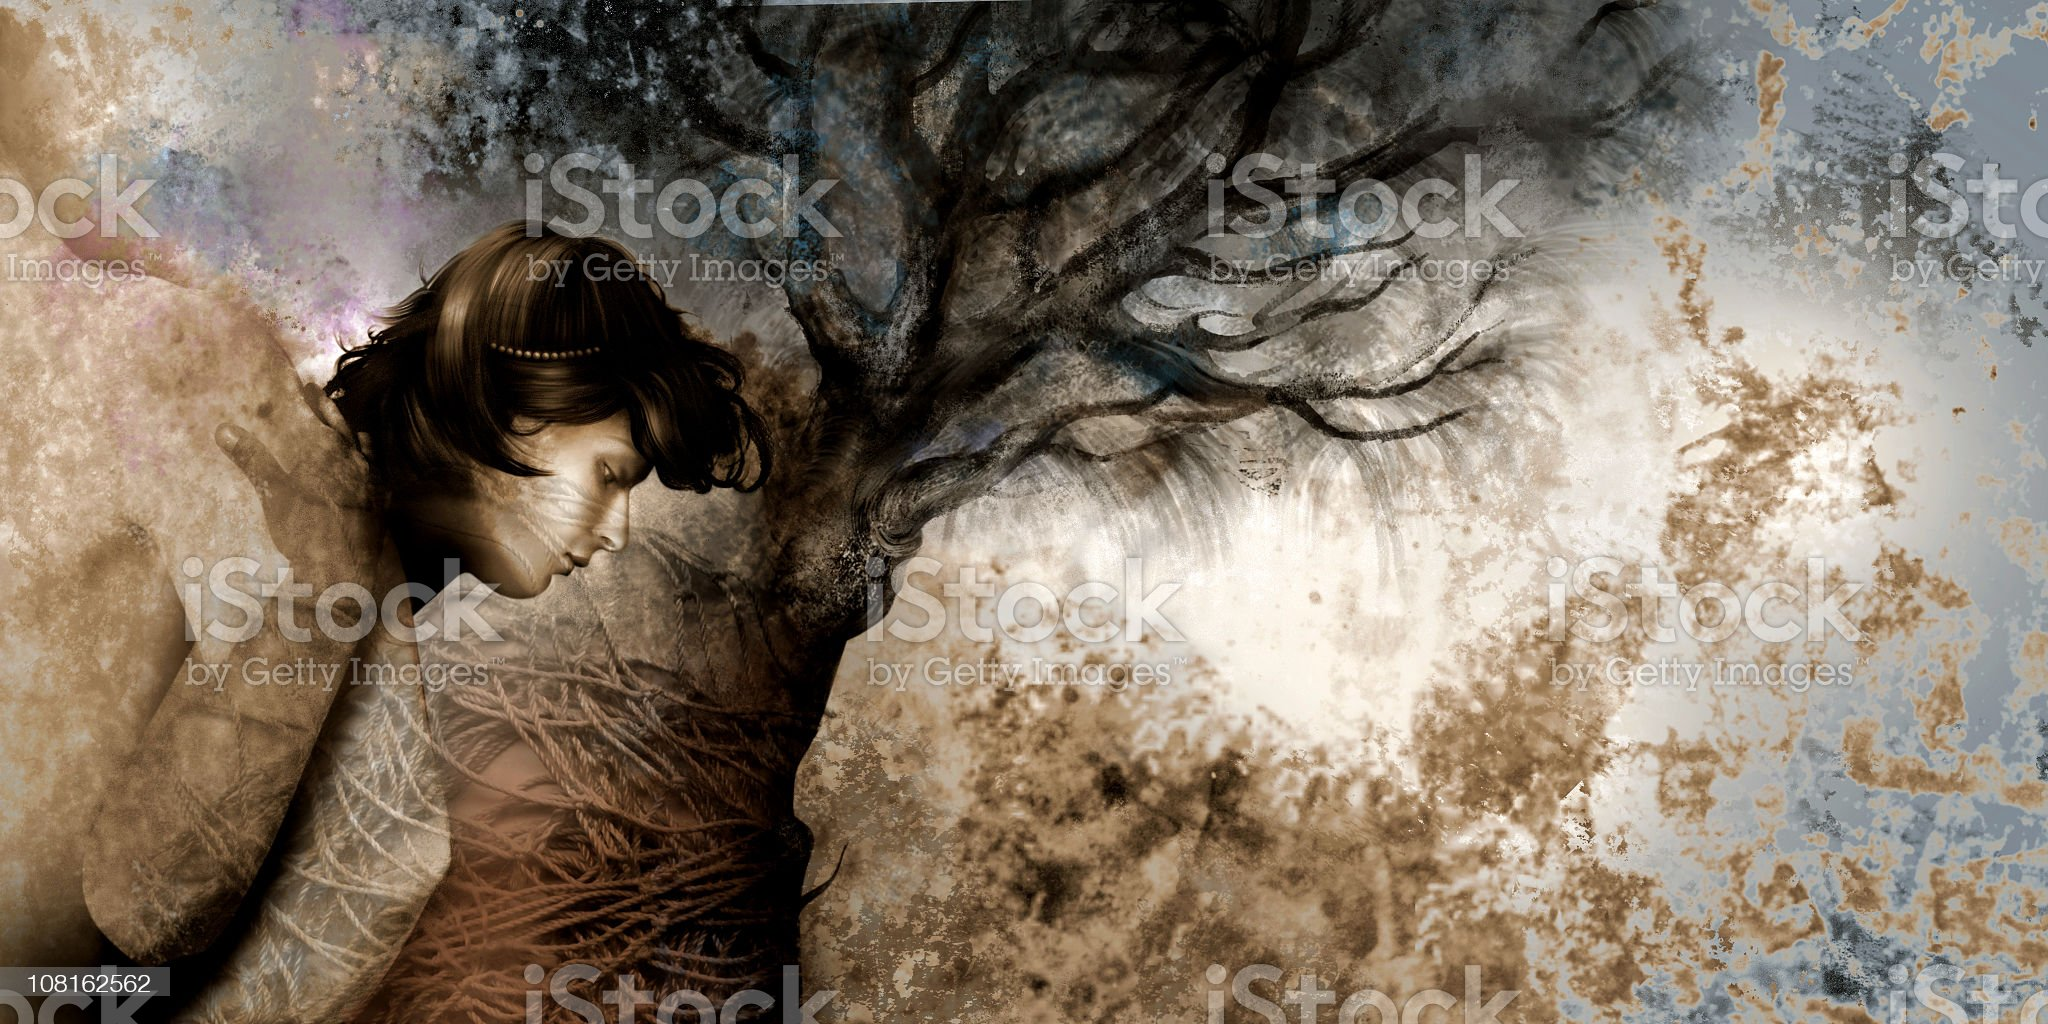 Woman and Man in Tree Branches, Illustration royalty-free stock vector art